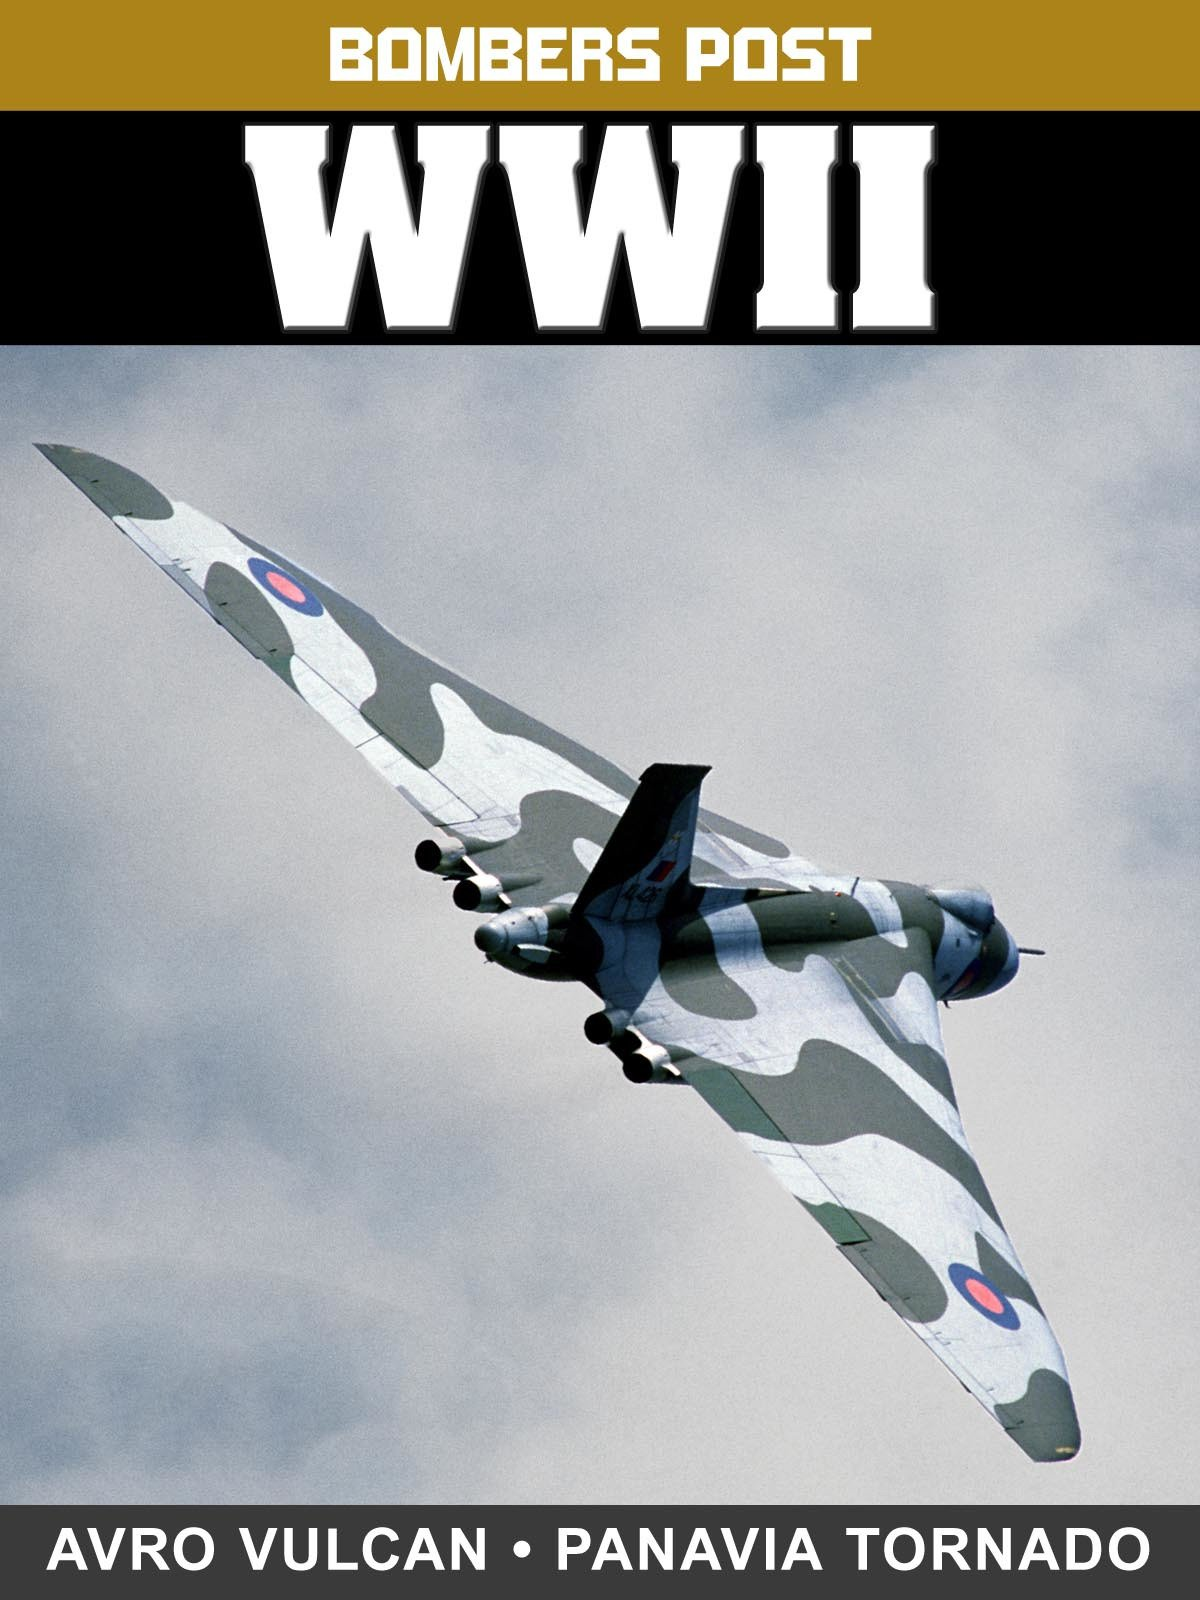 Bombers Post WWII: Avro Vulcan and Panavia Tornado